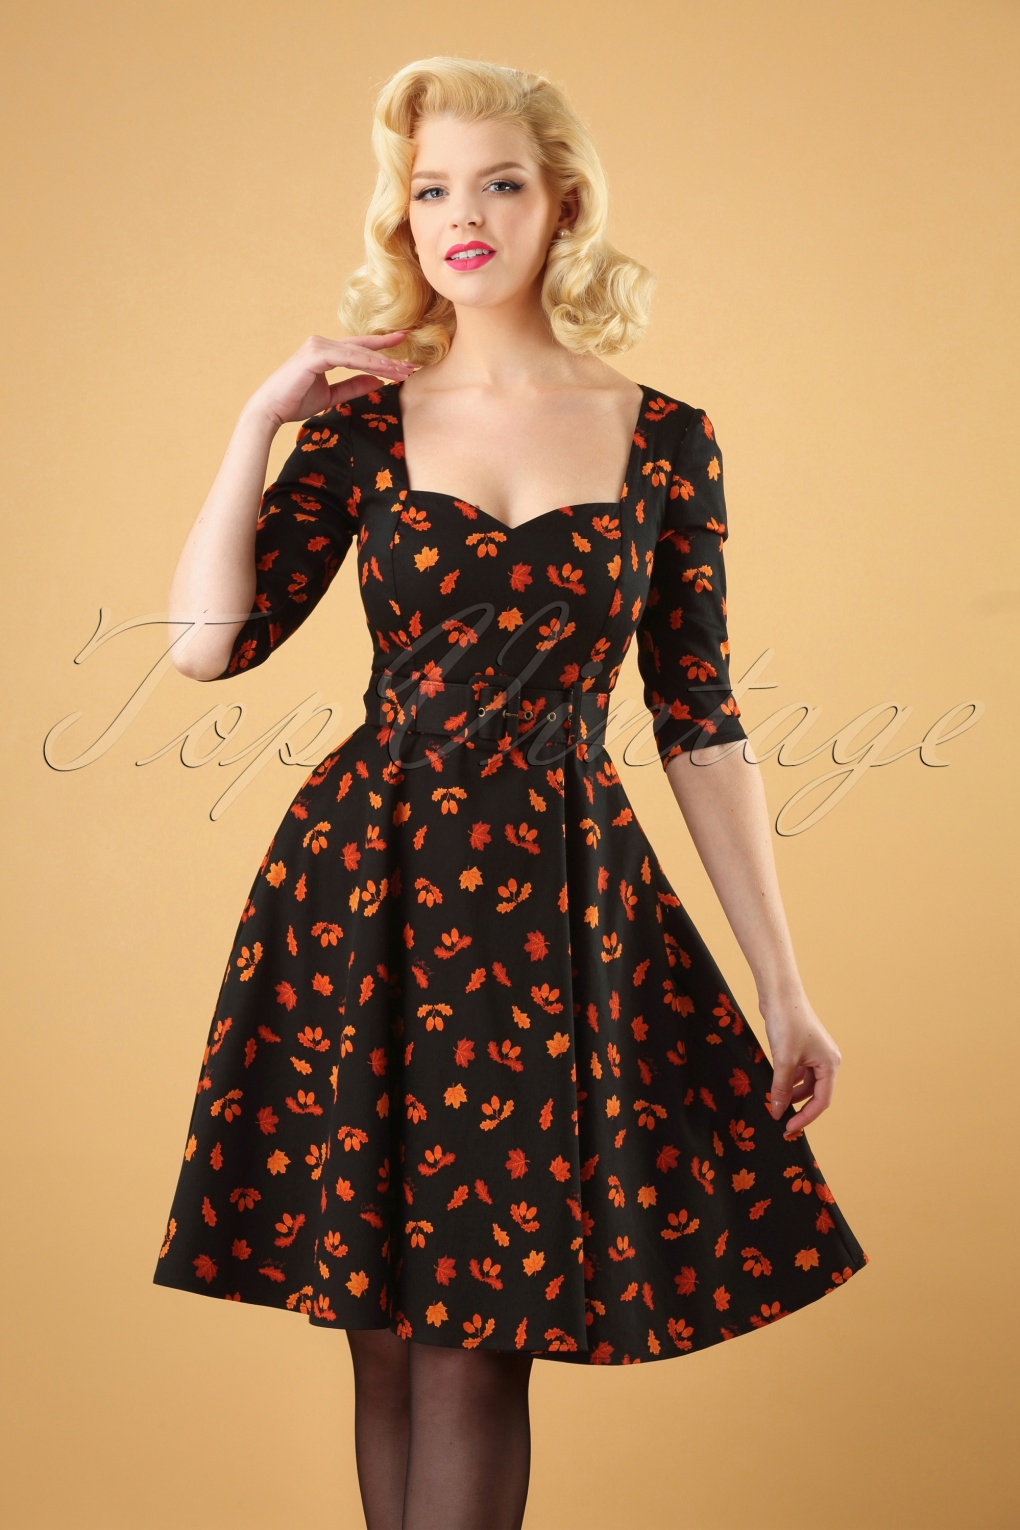 1950s Dresses, 50s Dresses | 1950s Style Dresses 50s Eliana Acorn Swing Dress in Black £61.42 AT vintagedancer.com